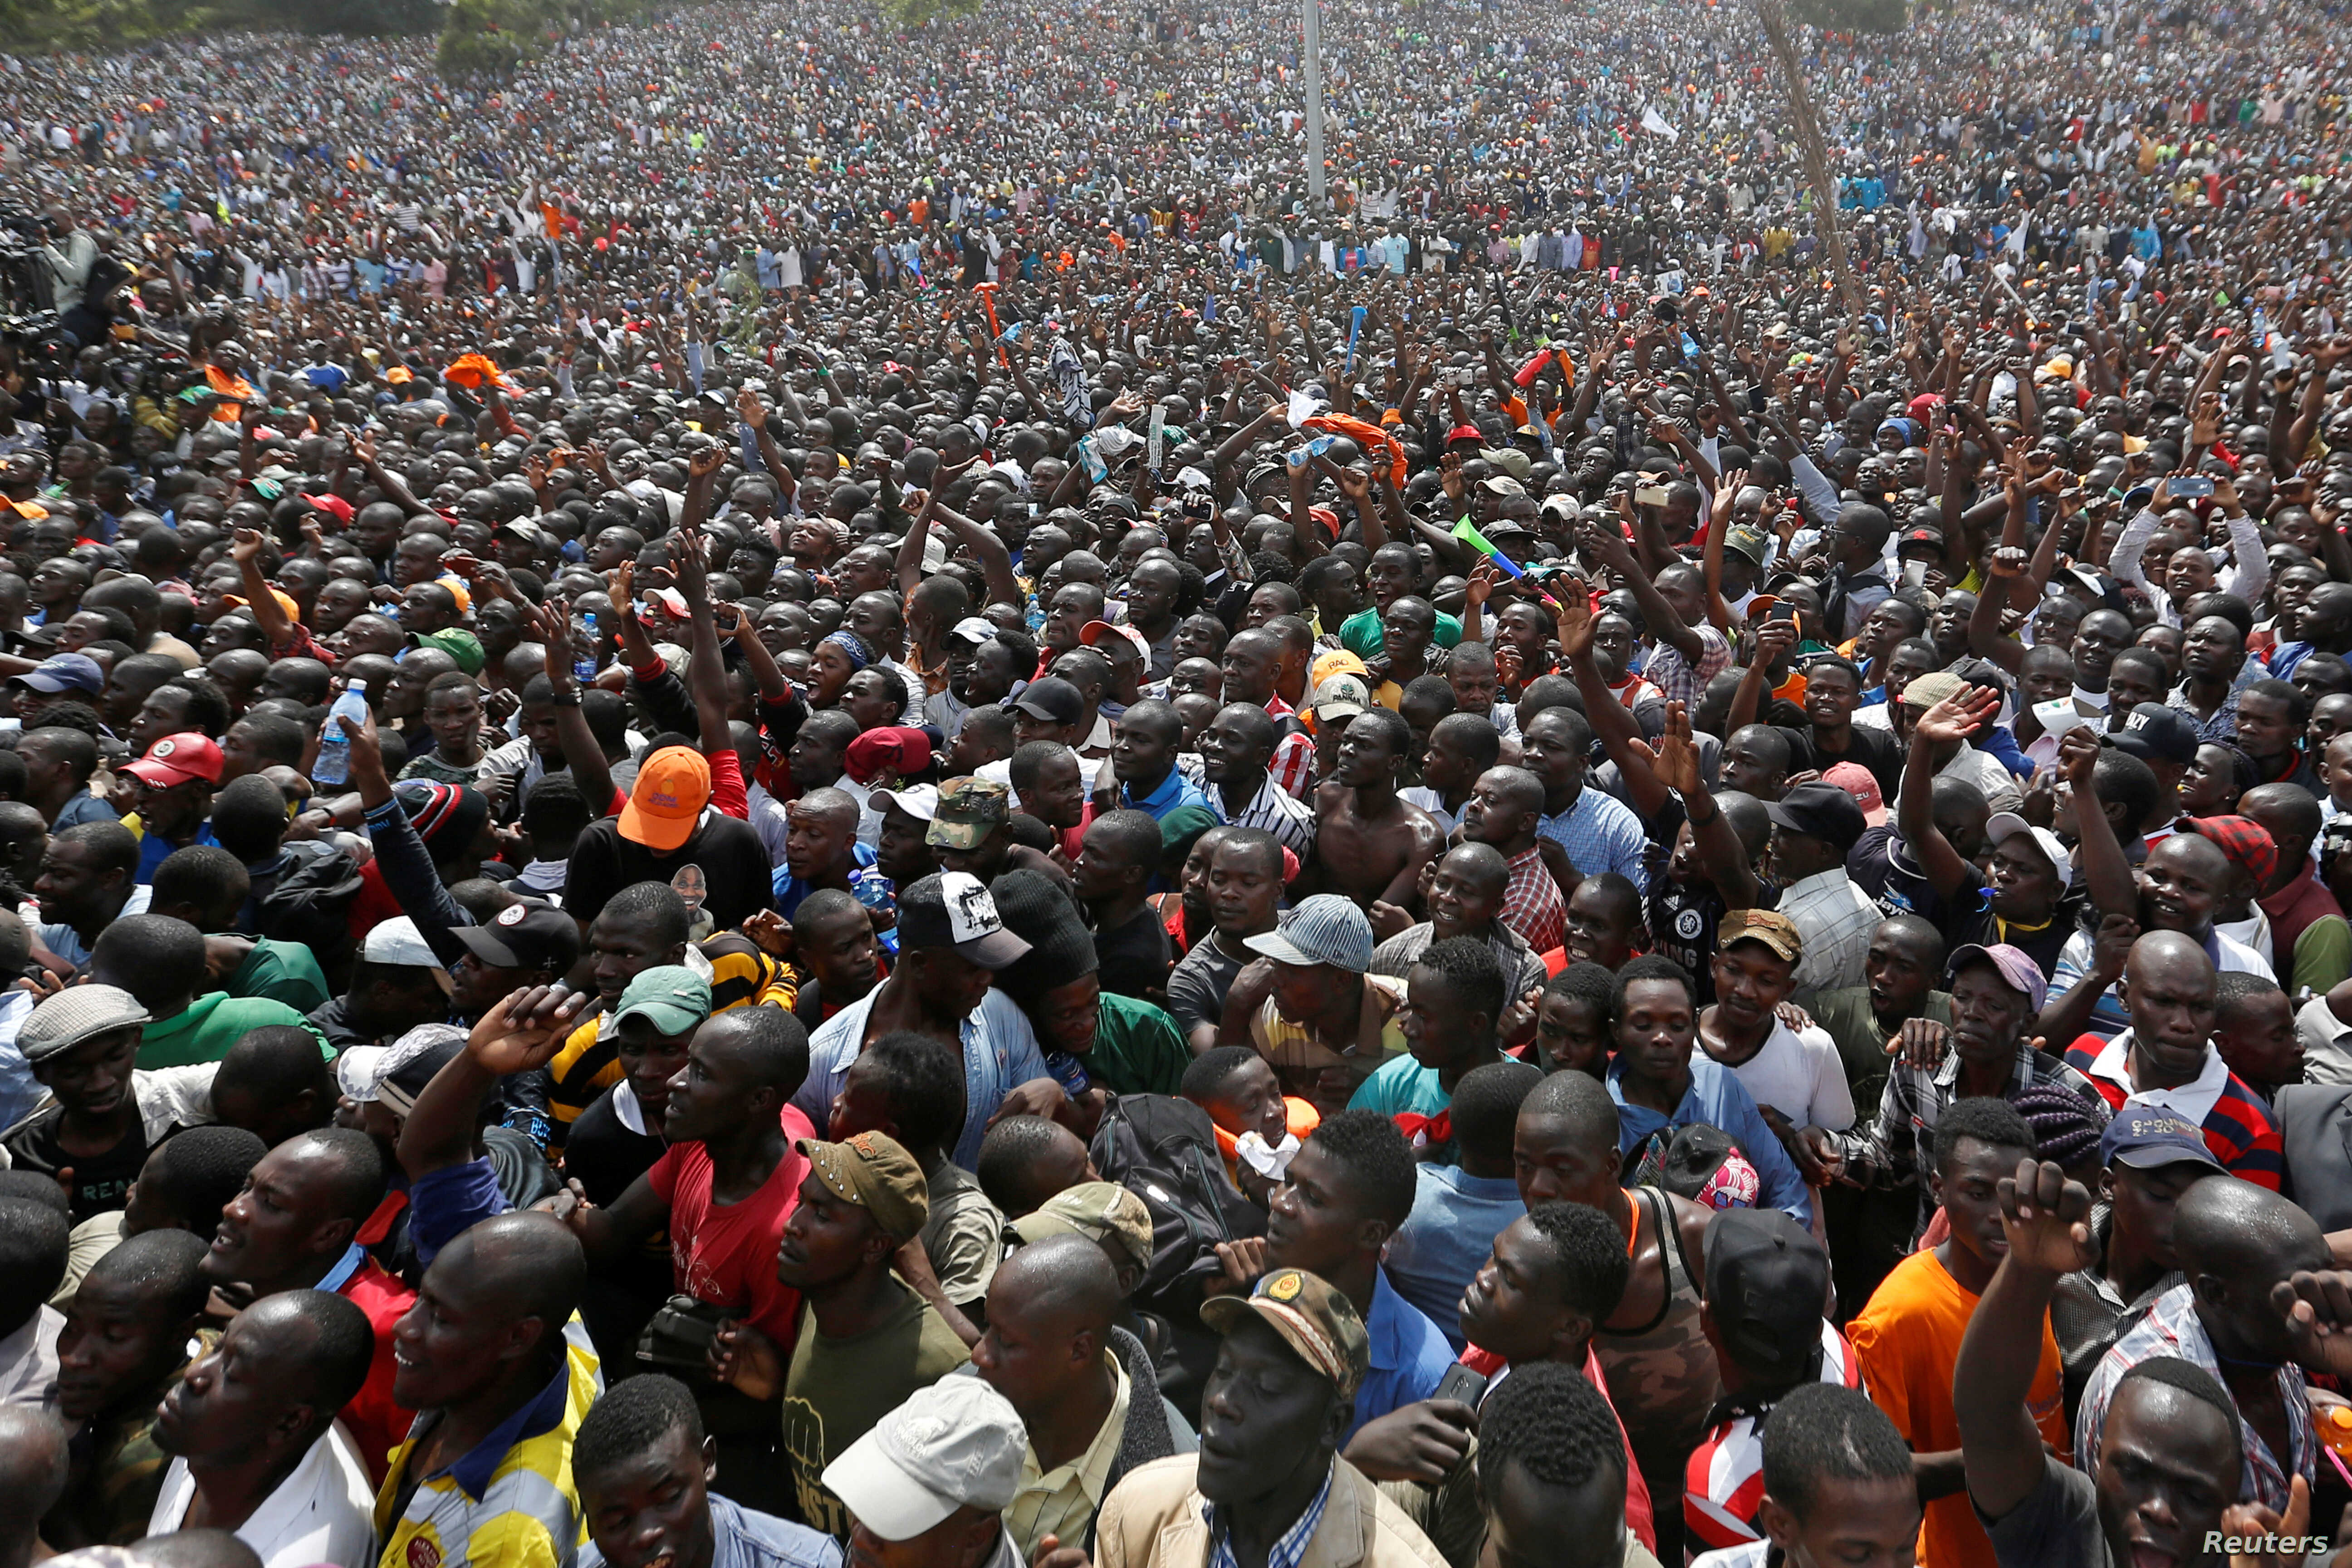 Supporters of Kenyan opposition leader Raila Odinga of the National Super Alliance (NASA) coalition gather during Odinga's swearing-in ceremony as the president of the People's Assembly in Nairobi, Kenya, Jan. 30, 2018.